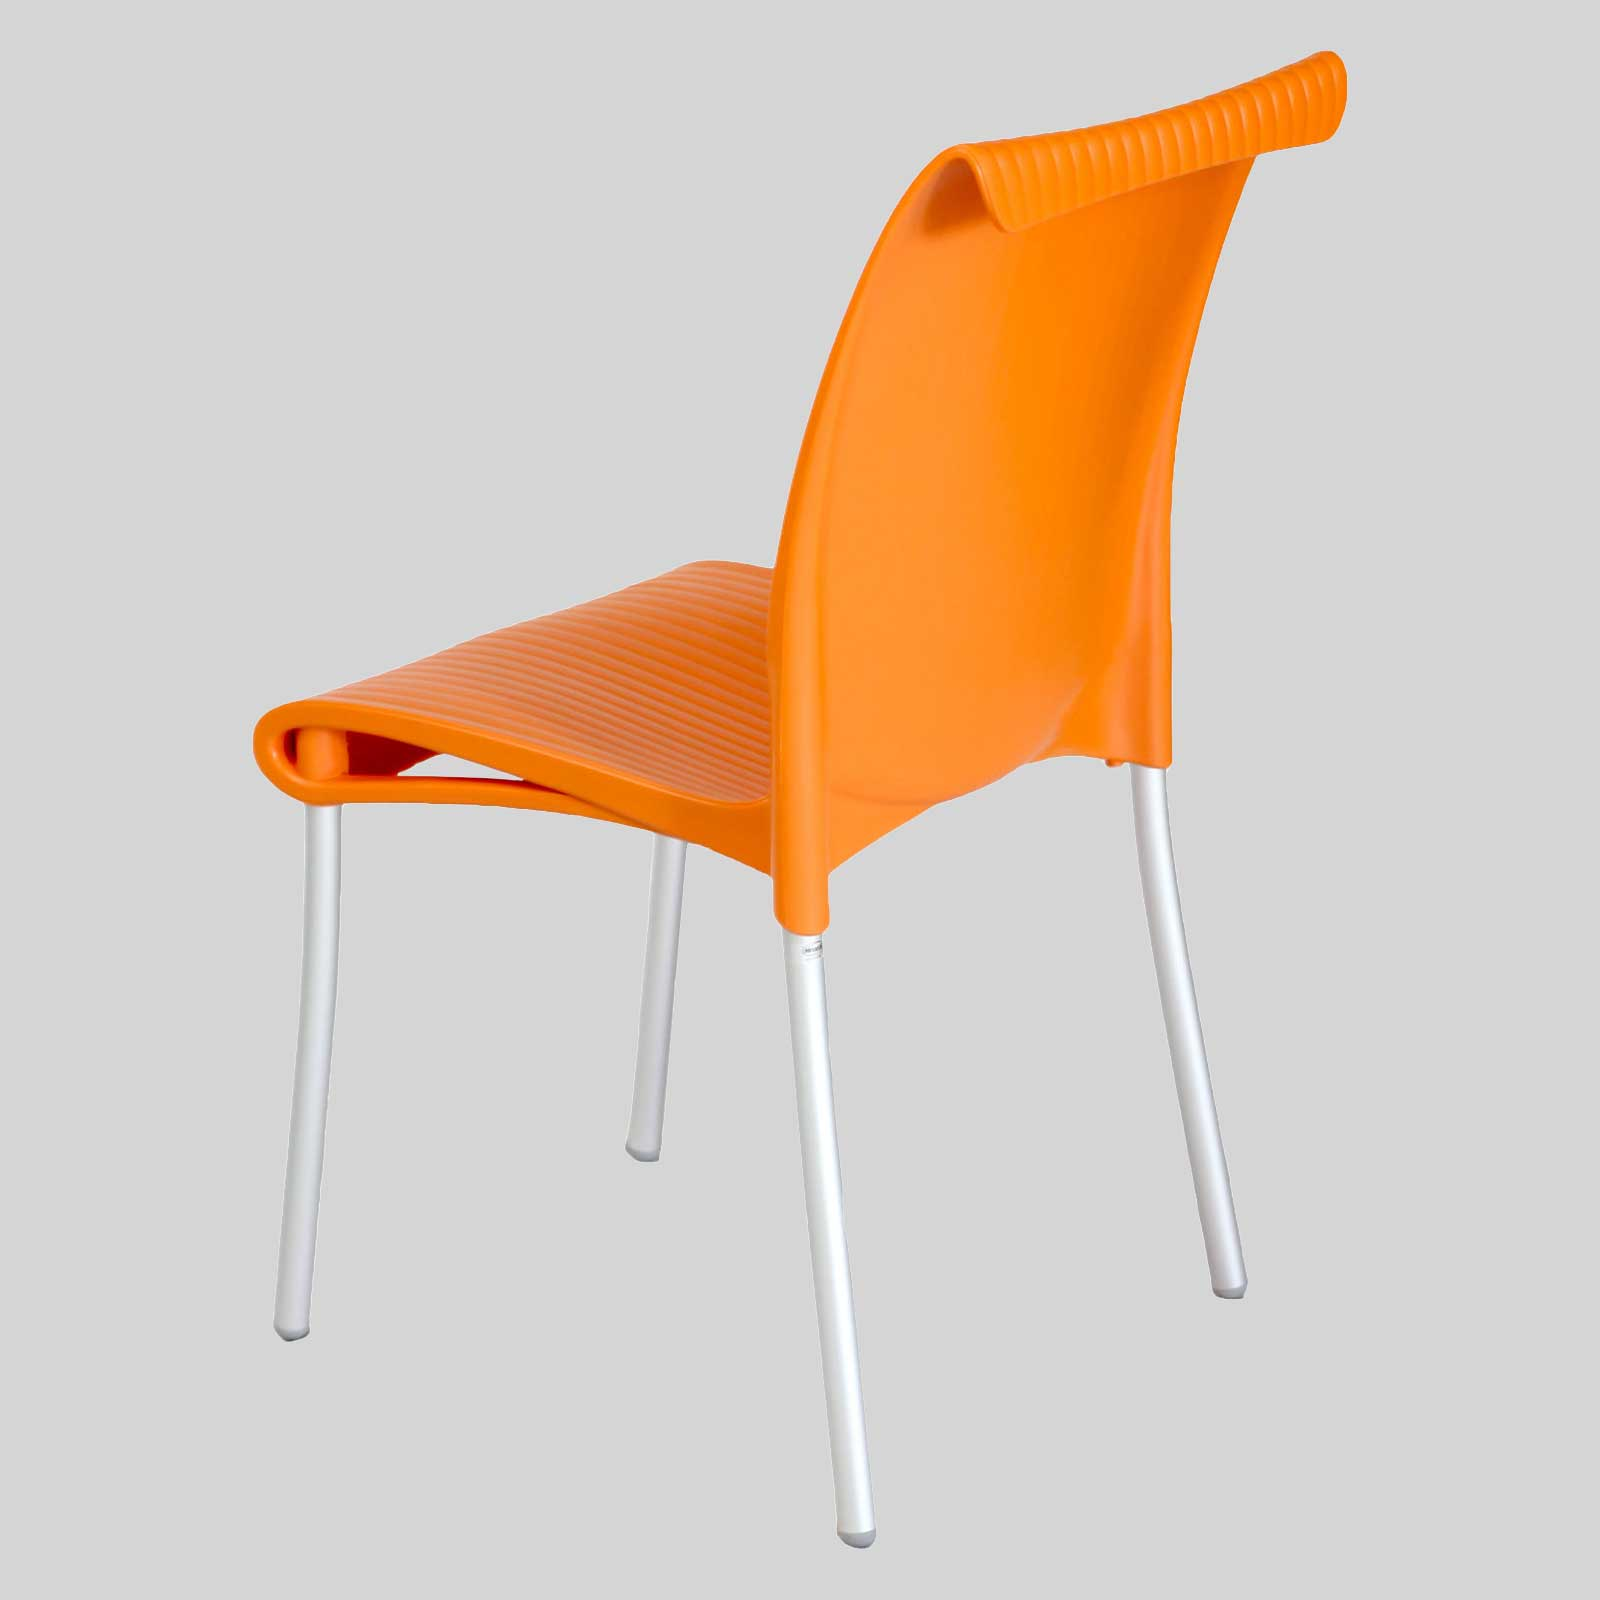 orange cafe chairs full tilt first chair outdoor furniture dawson concept collections